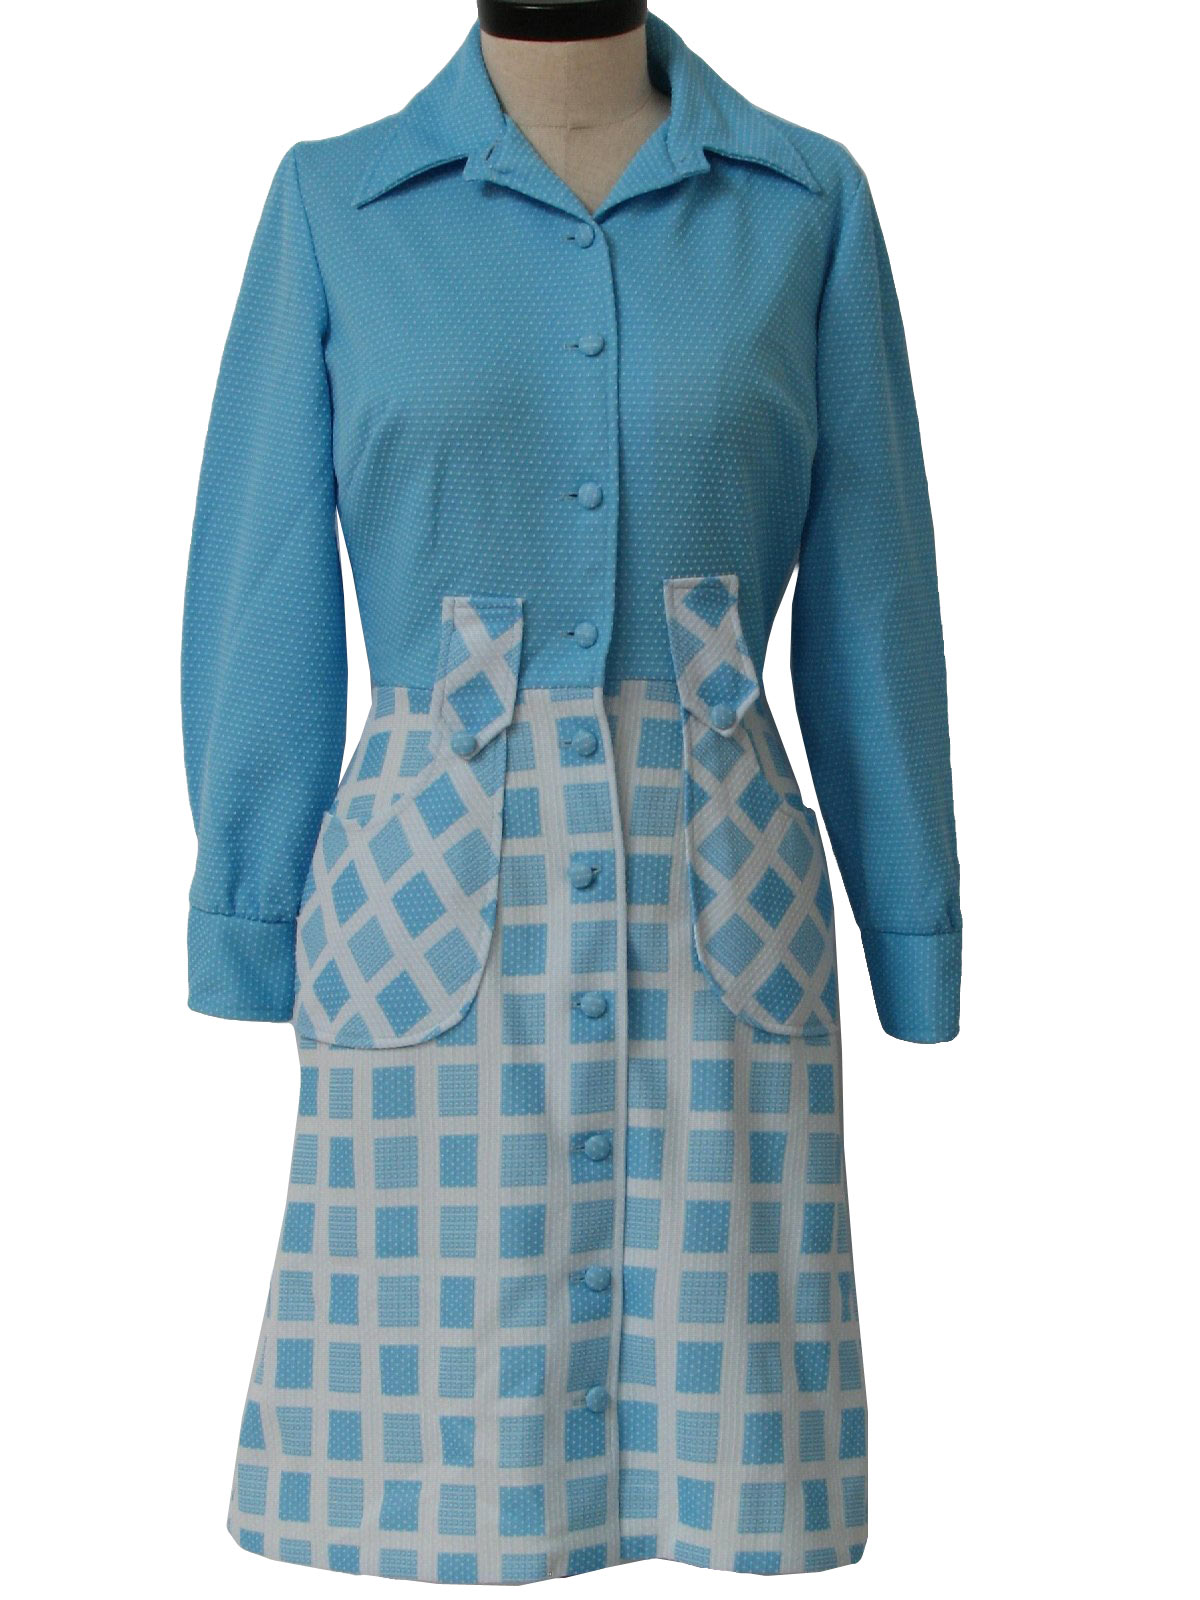 70 s jc penney dress 70s jc penney womens turquoise and